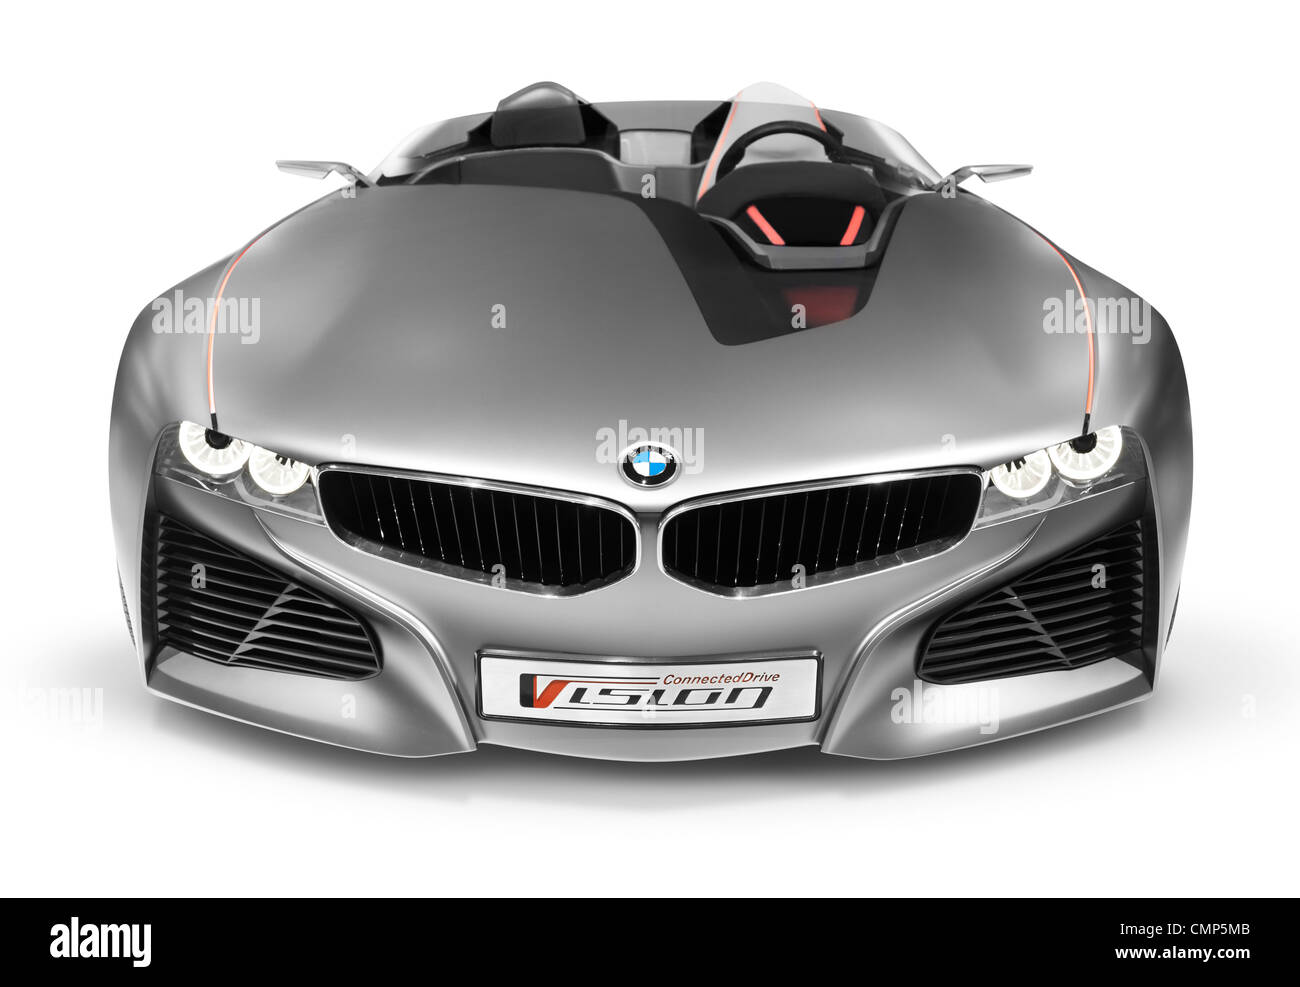 2012 Bmw Vision Connecteddrive Concept Sports Car Front View